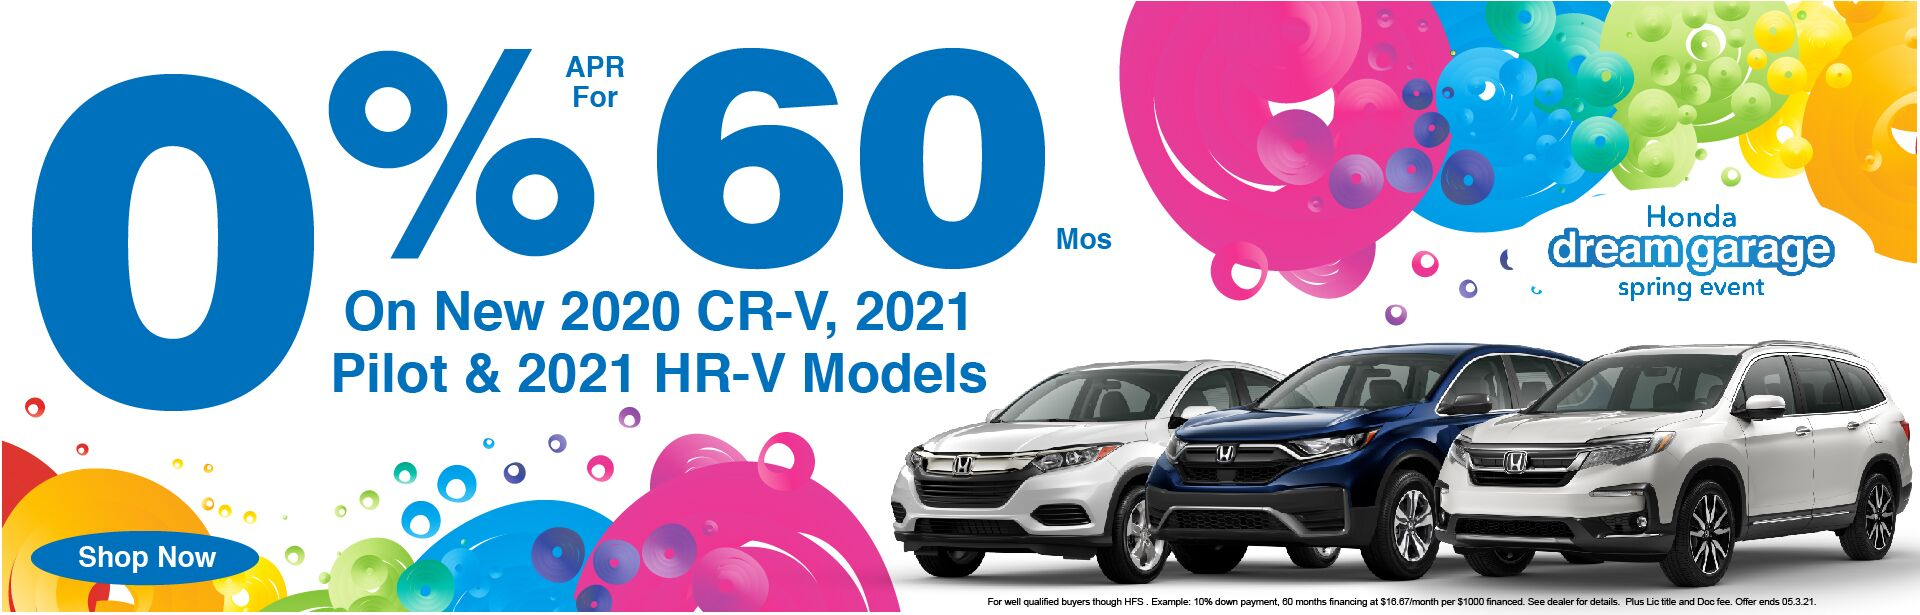 0% APR x 60 on 2020 CR-V, 2021 Pilot, & 2021 HR-V